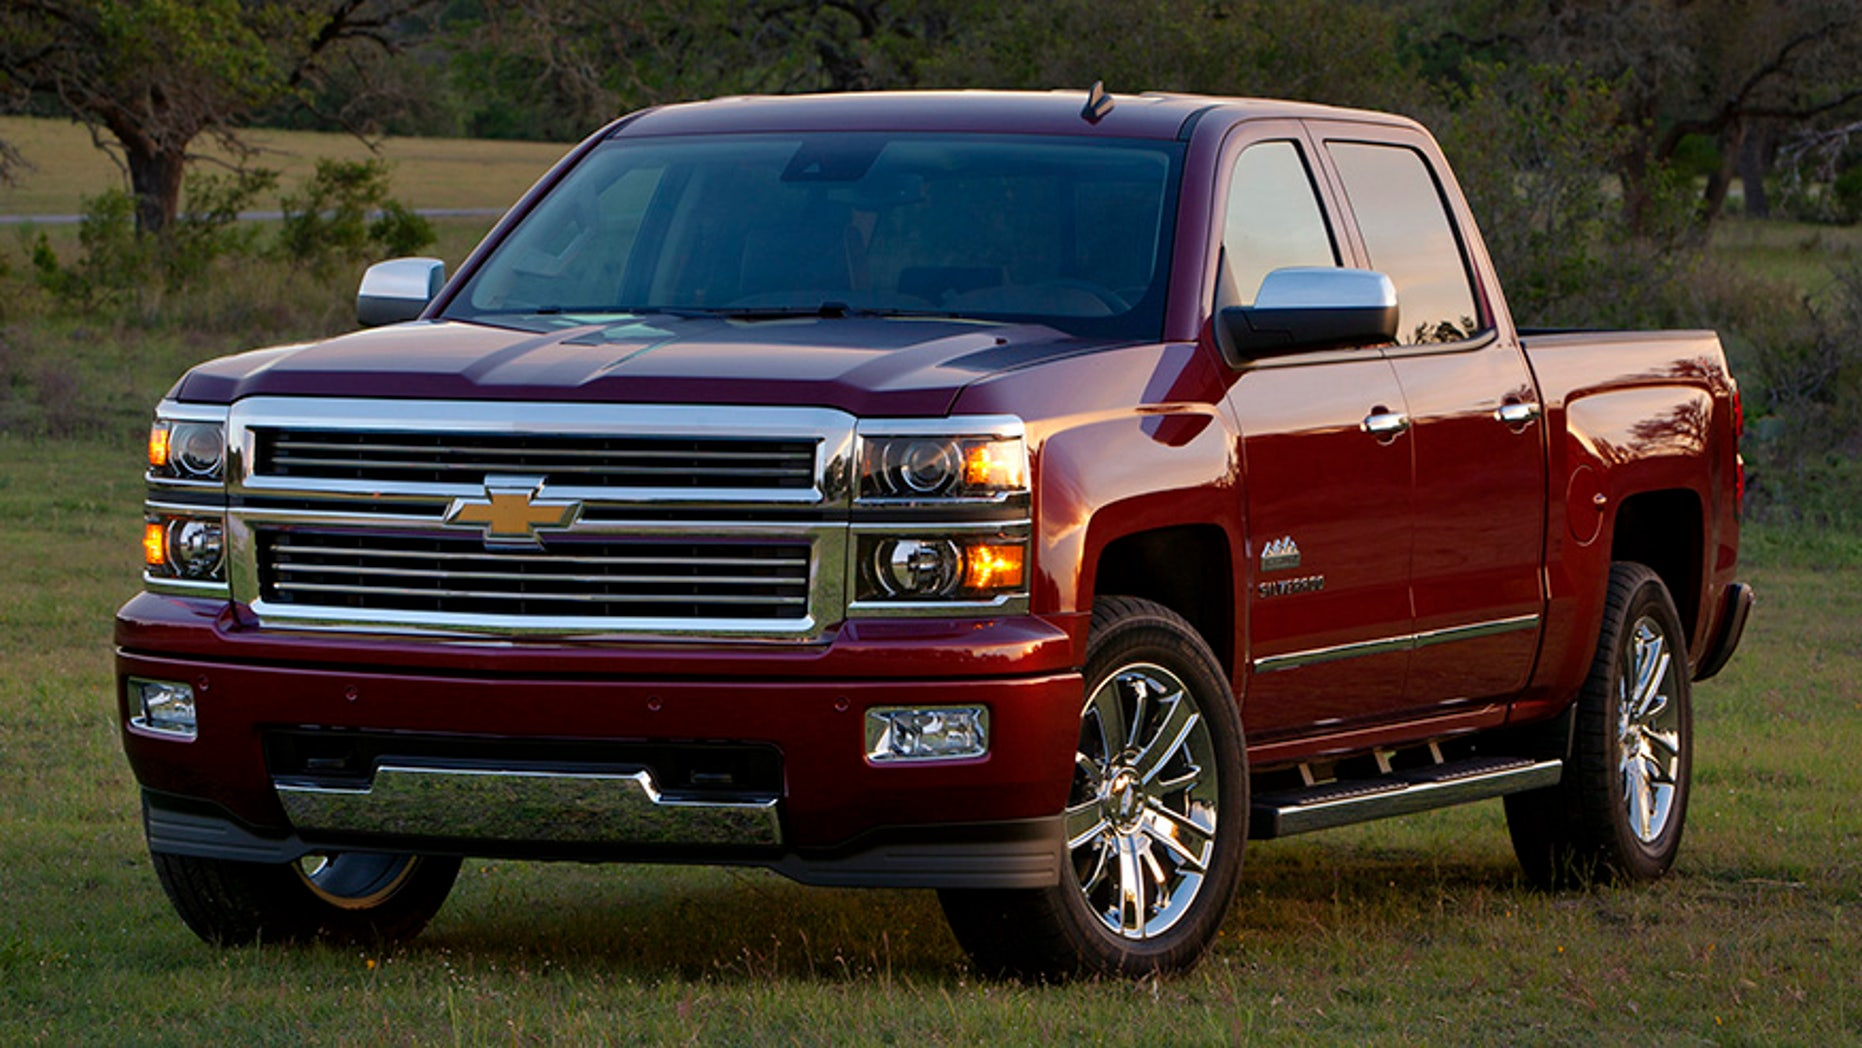 The 2014 Chevrolet Silverado High Country adds a new level of tough truck luxury to the lineup with a unique chrome grille with horizontal chrome bars, halogen projector headlamps and body-color front and rear bumpers. Unique 20-inch chrome wheels with P275/55R20 all-season tires are standard, as are chrome body side moldings, door handles and mirrors.